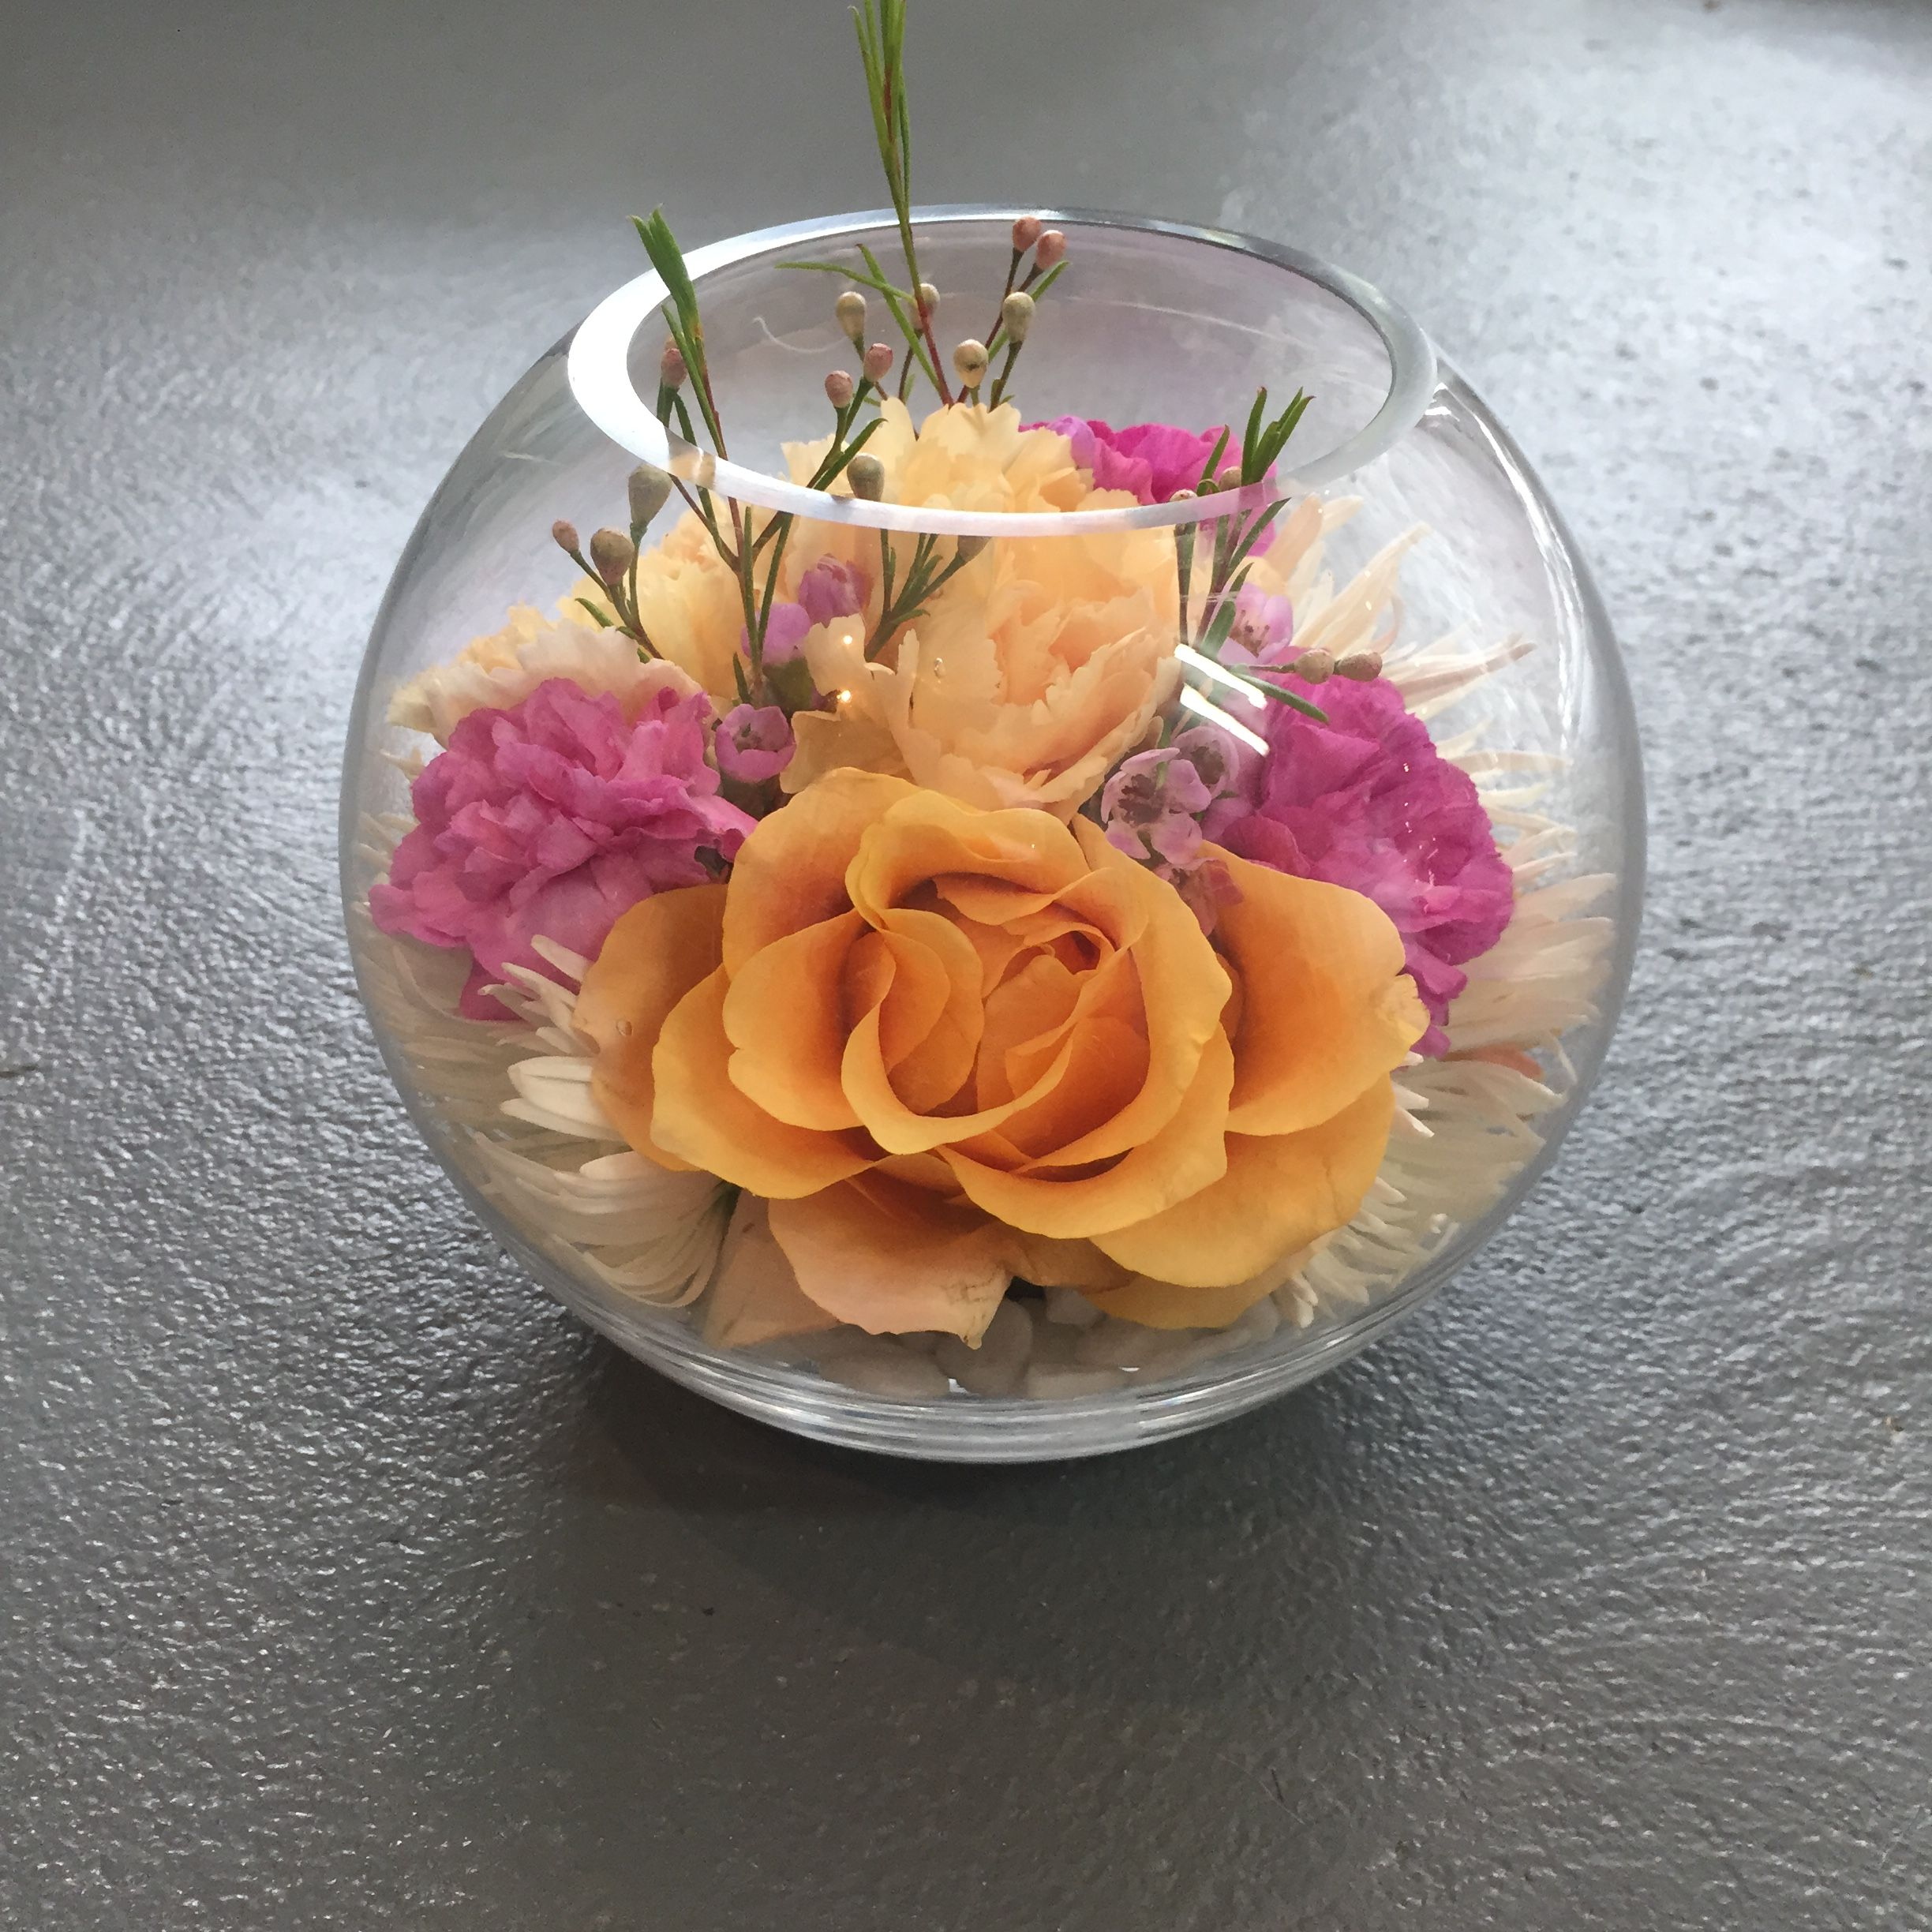 Fish bowl vase flower arrangement created by madison in bloom fish bowl vase flower arrangement created by madison in bloom floral design facebook reviewsmspy